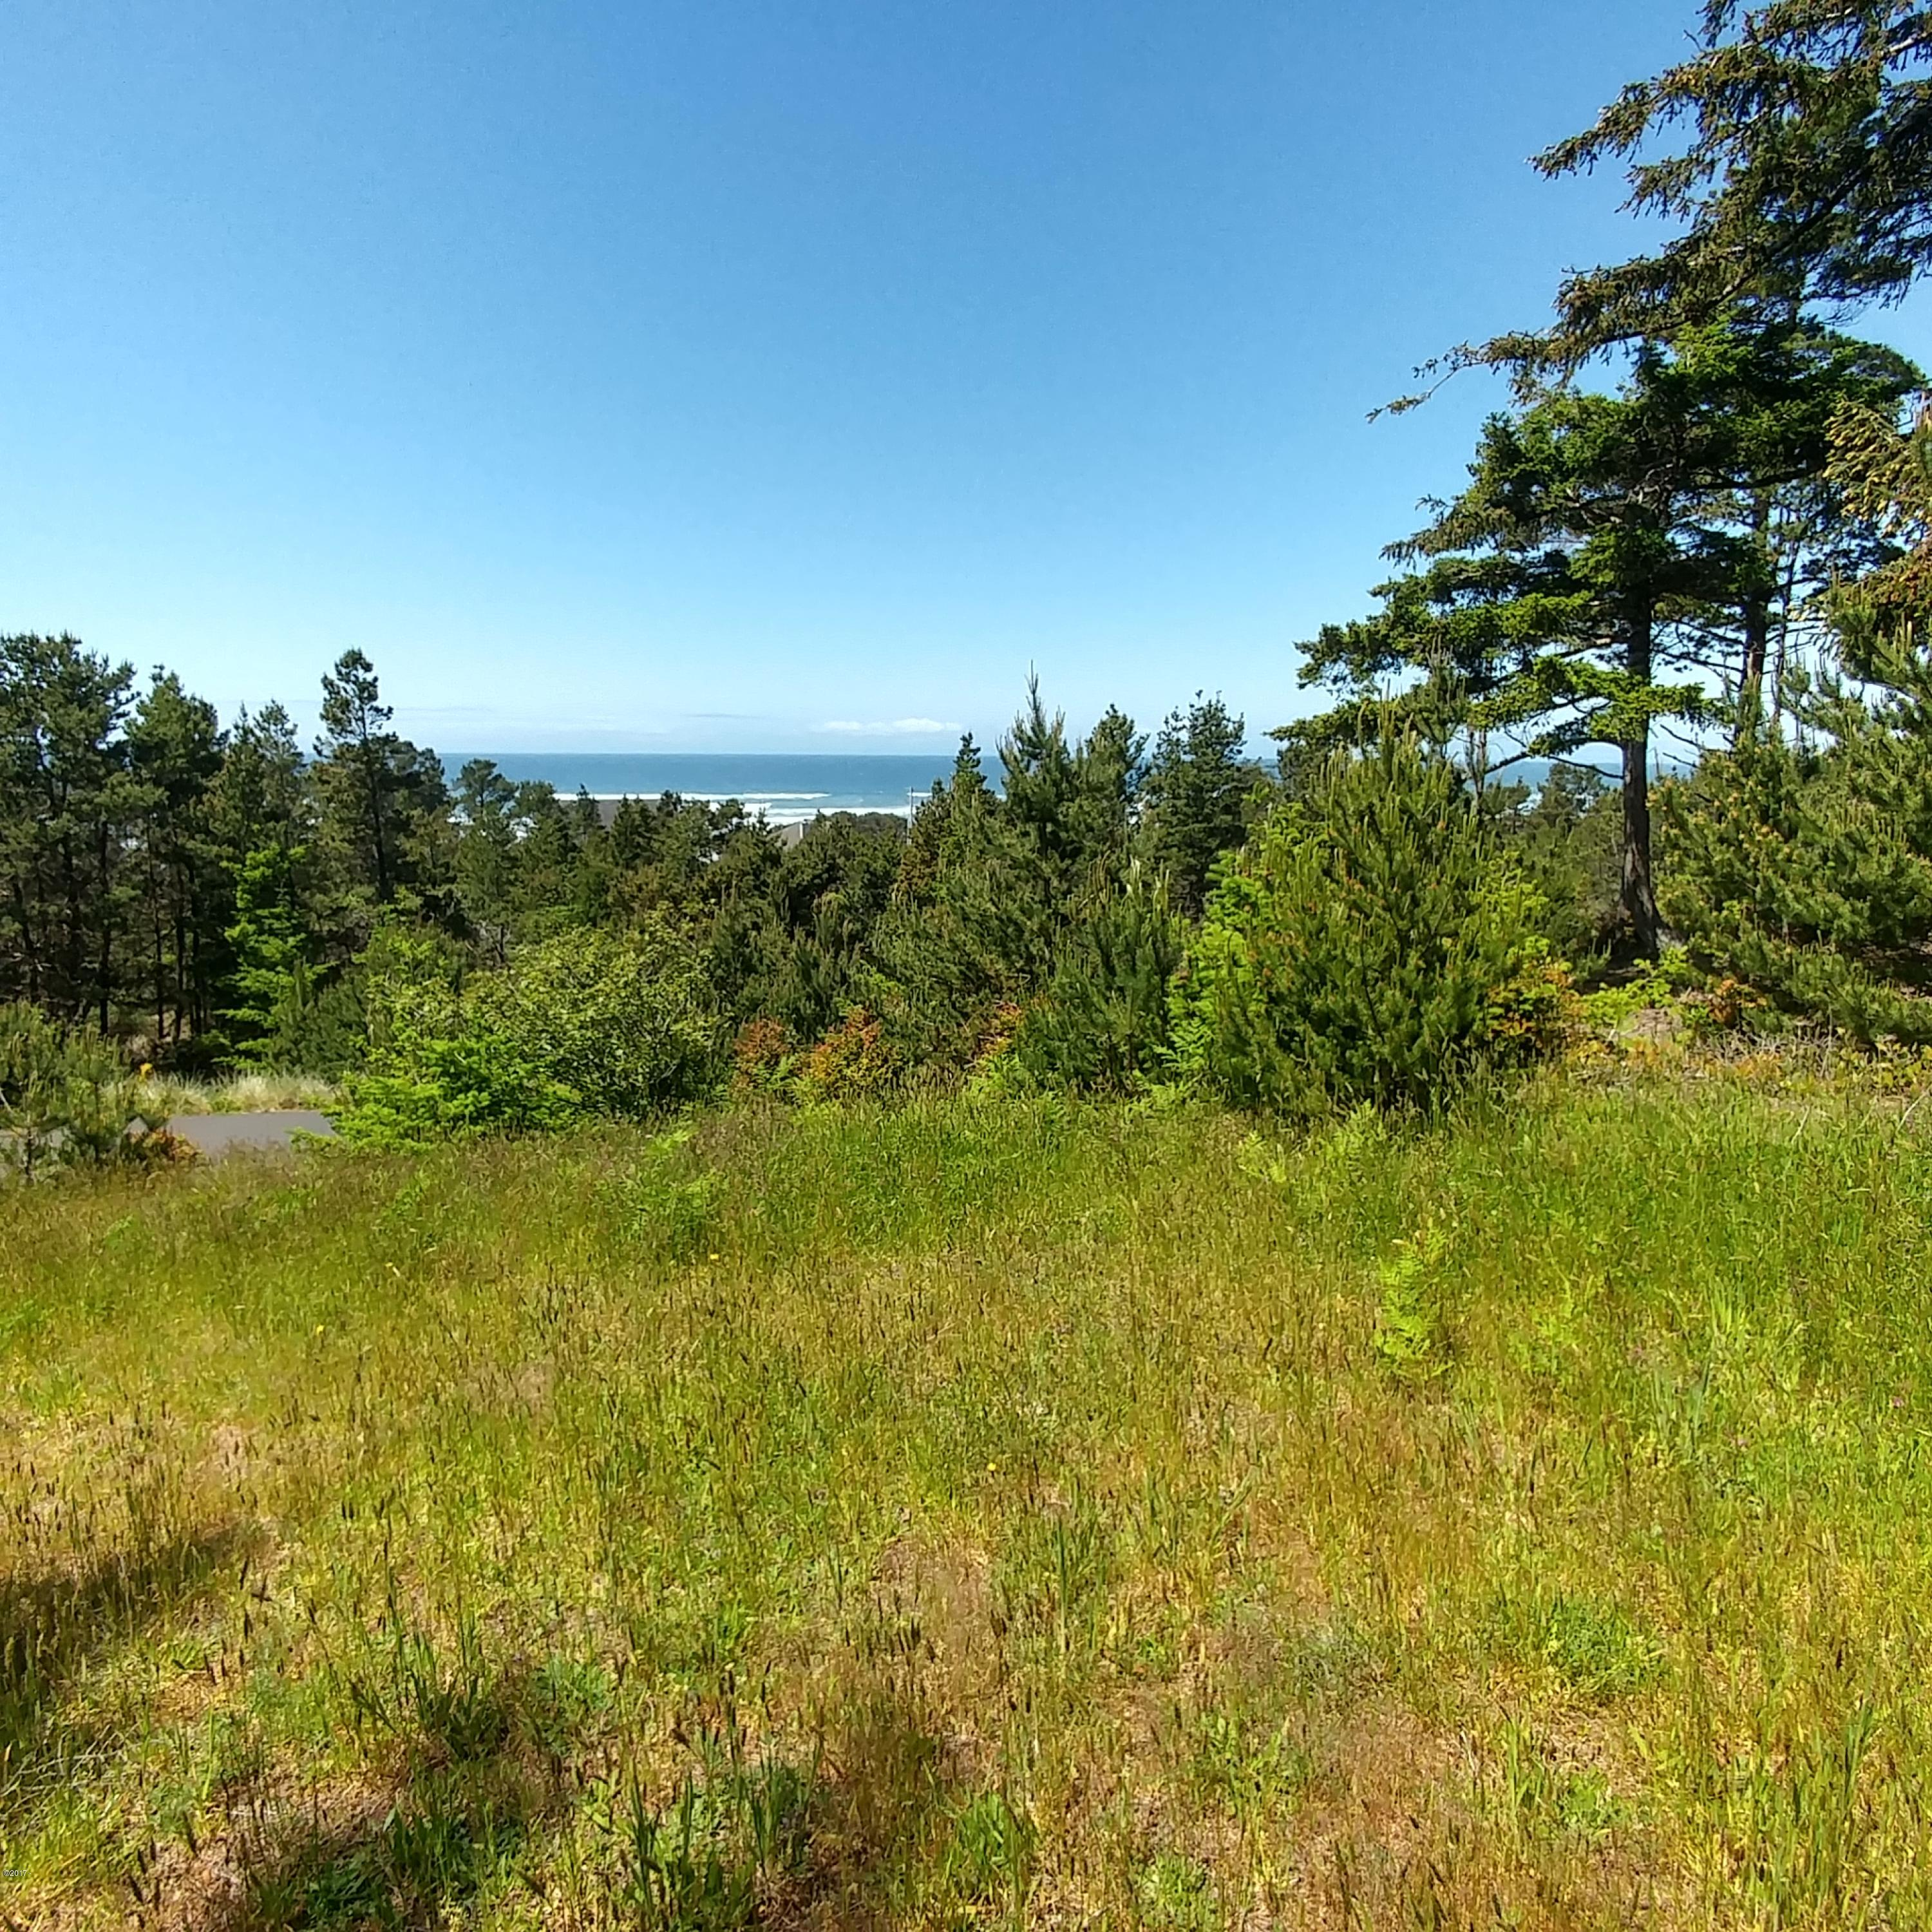 LOT 4 NW Lotus Lake Dr., Waldport, OR 97394 - House site view